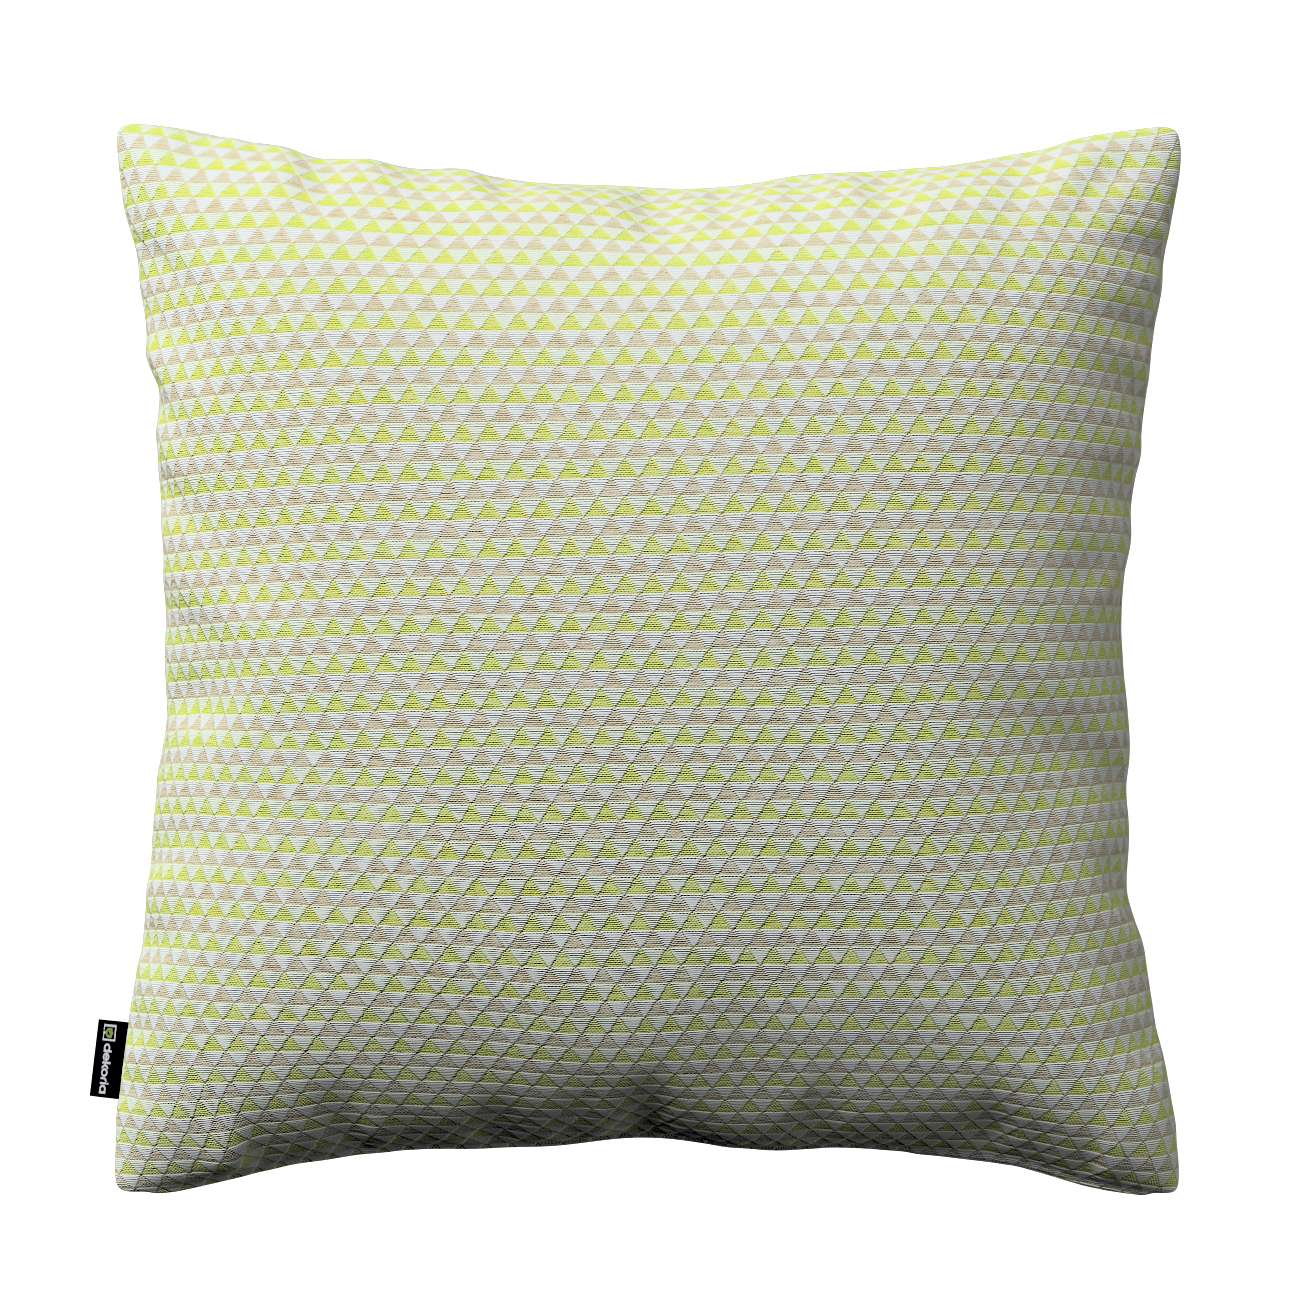 Kinga cushion cover 43 x 43 cm (17 x 17 inch) in collection Rustica, fabric: 140-34